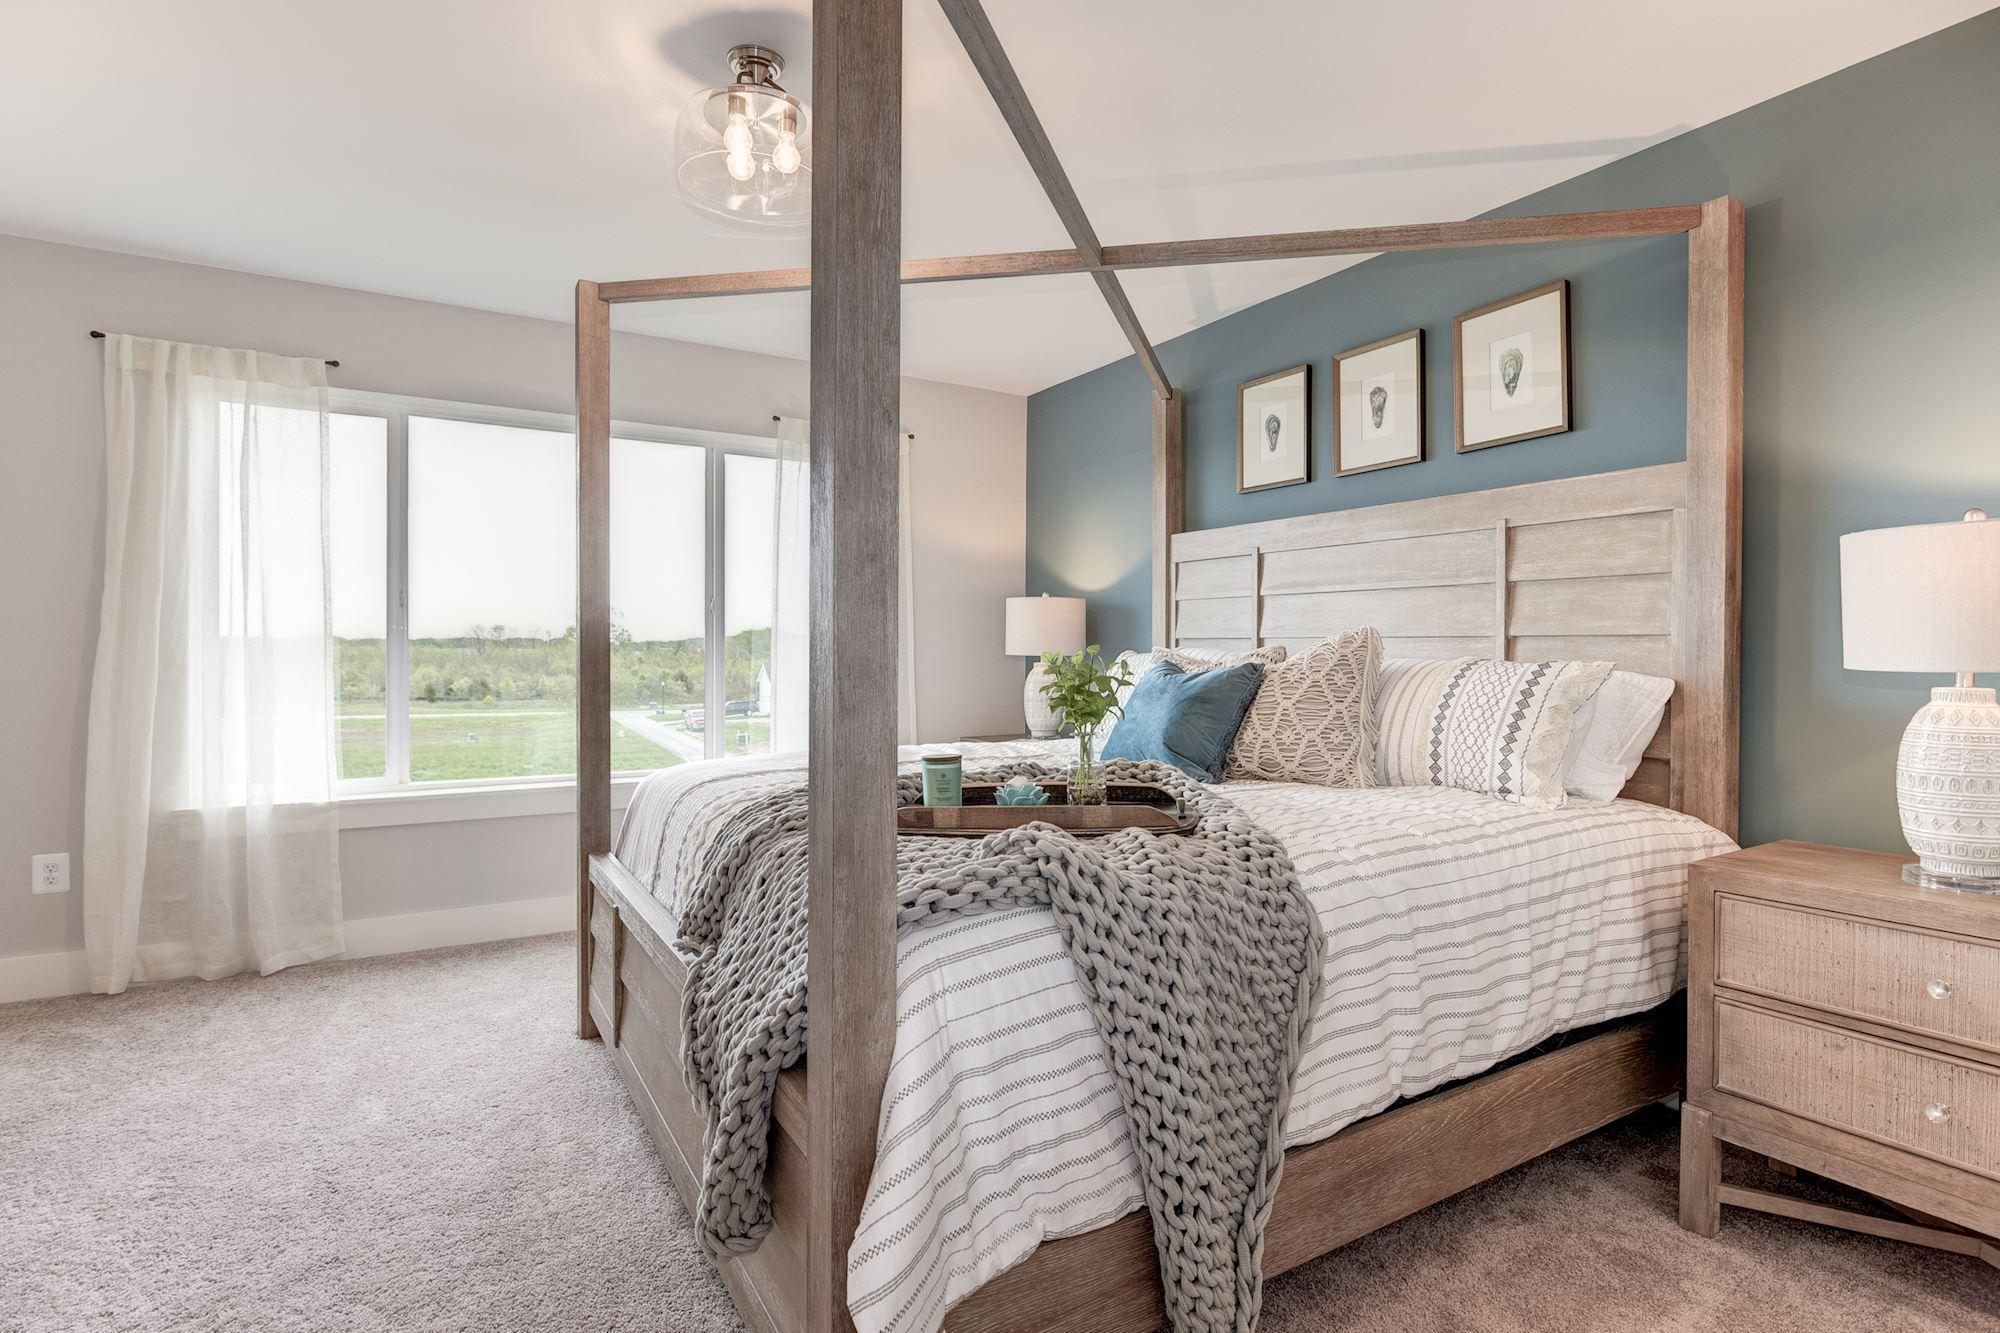 Bedroom featured in the Townhome-End Unit By Baldwin Homes Inc. in Eastern Shore, MD